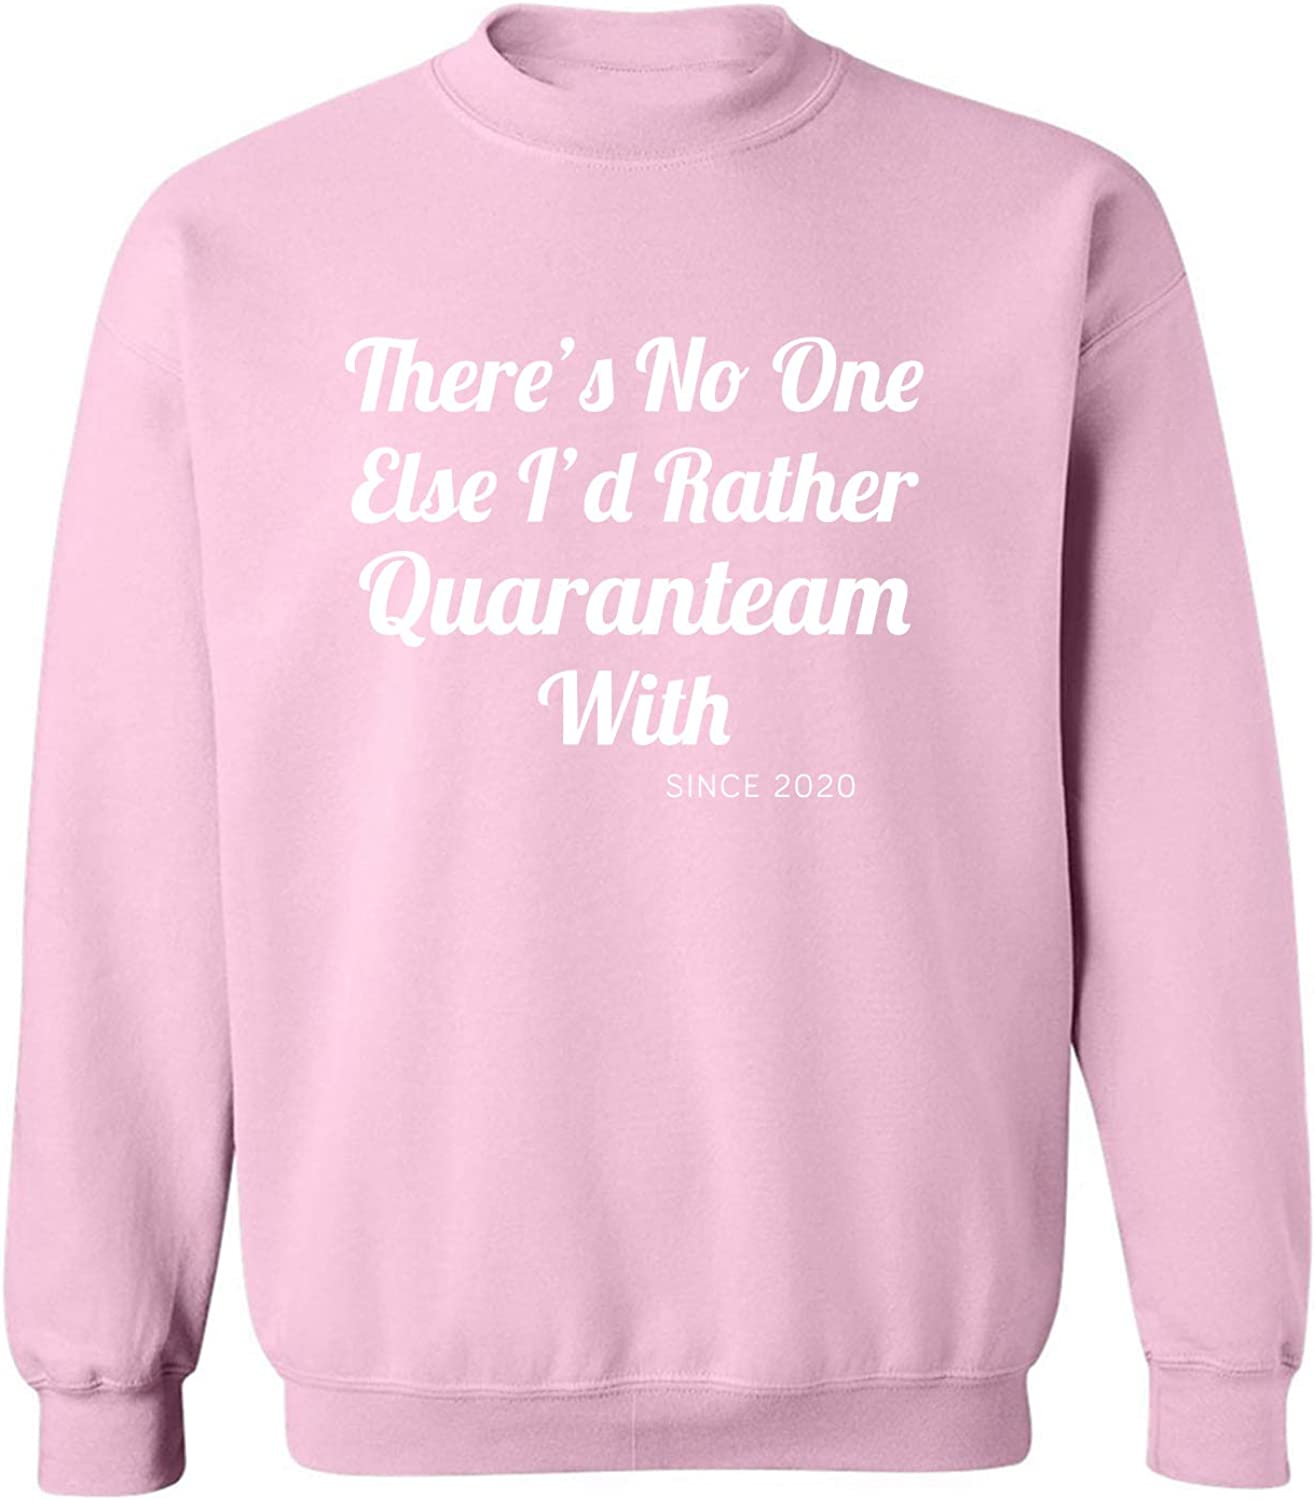 There's No One Else. ..Quaranteam Crewneck Sweatshirt in Pink - XXXXX-Large